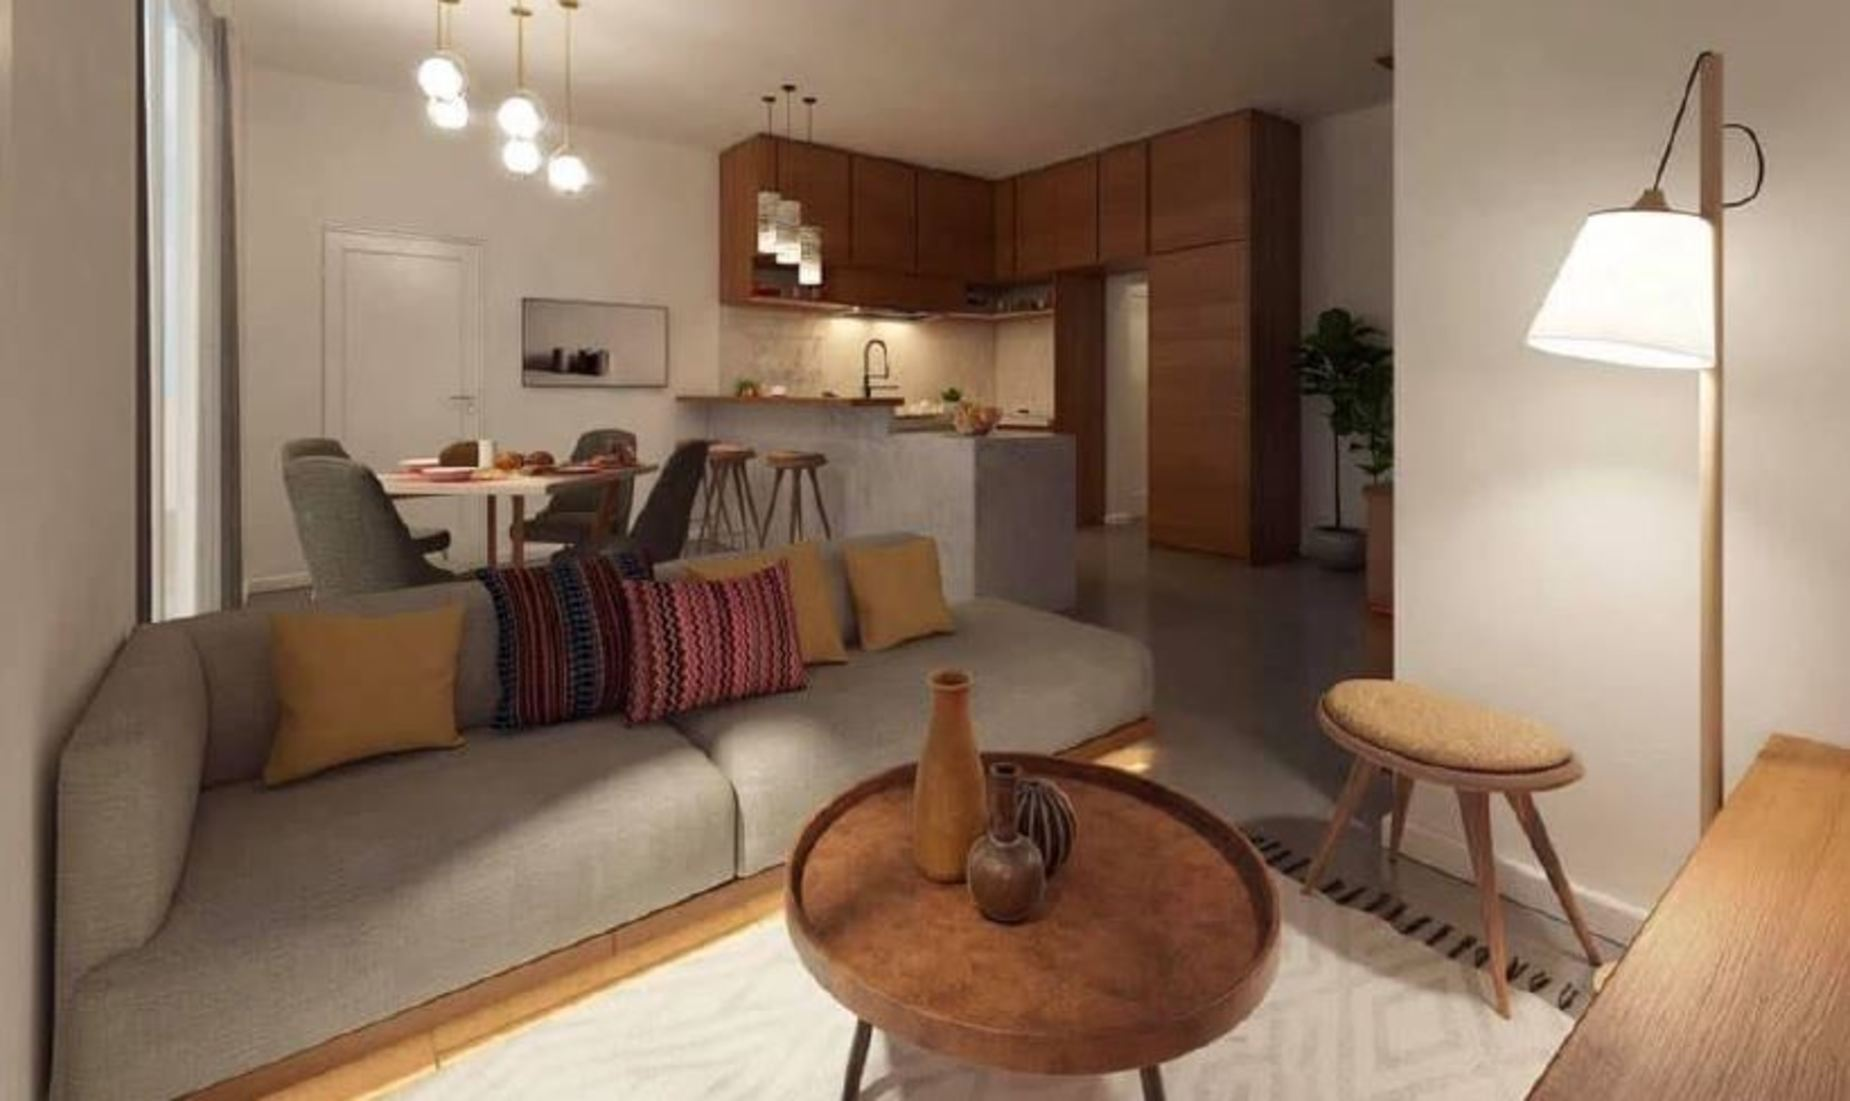 3 bed Apartment For Sale in Dingli, Dingli - thumb 3